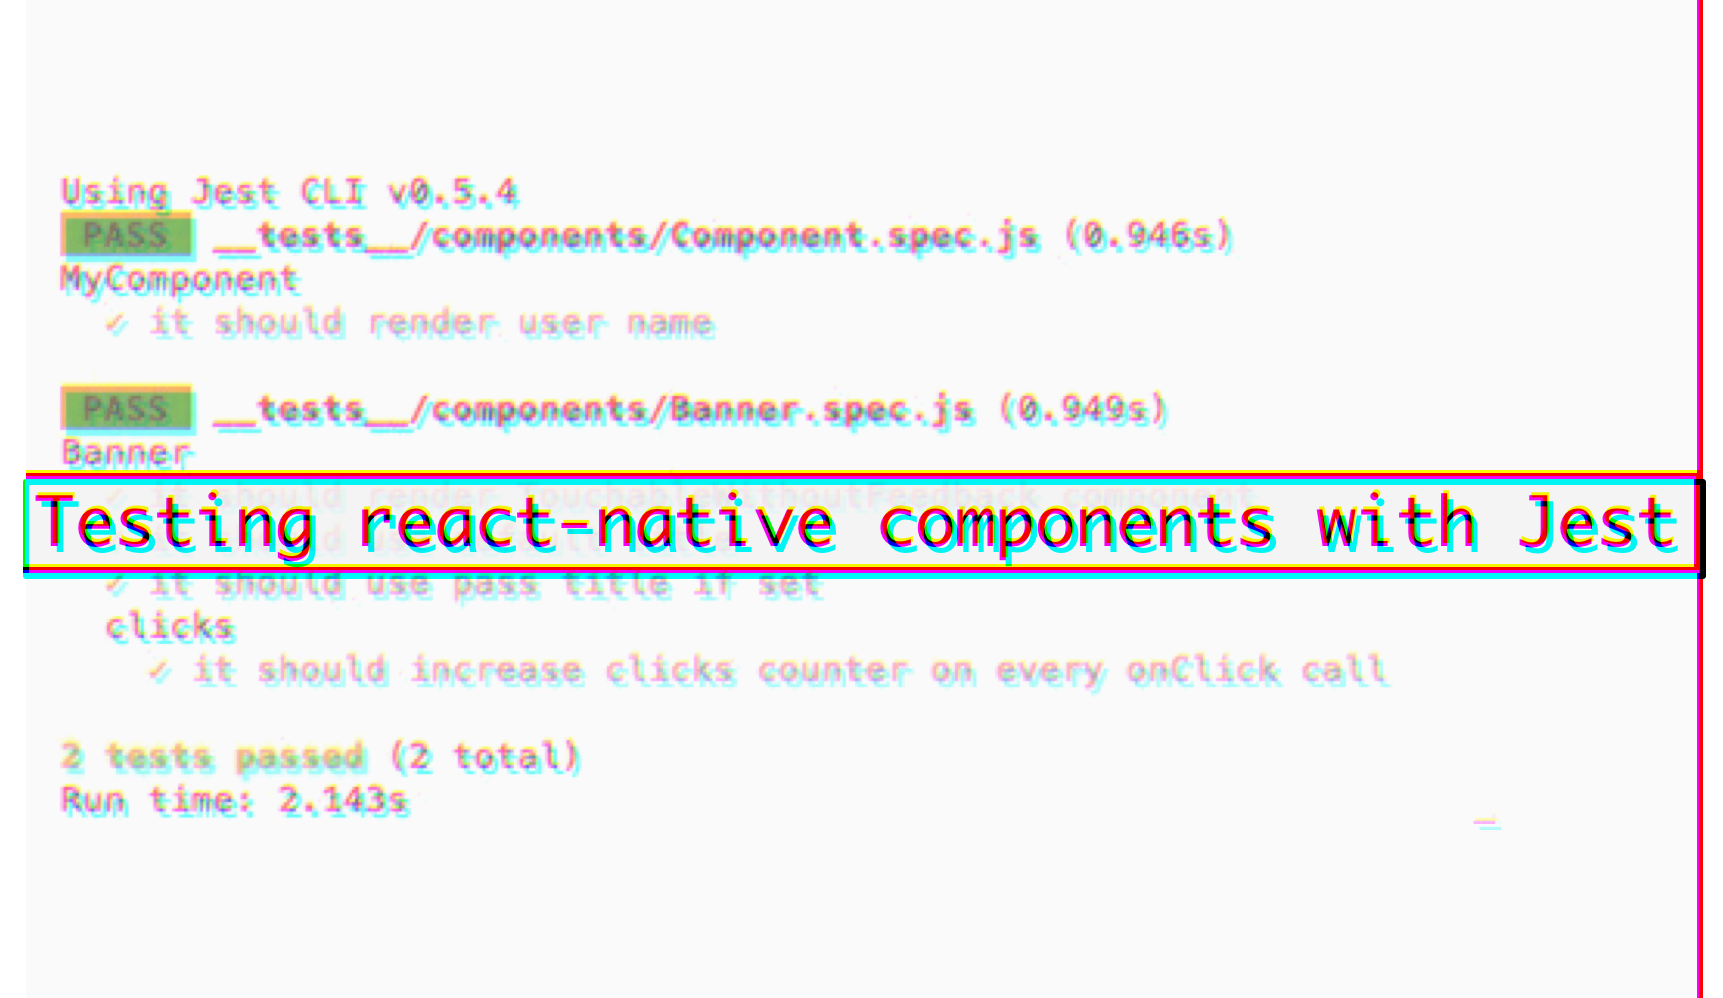 Testing react-native components with Jest